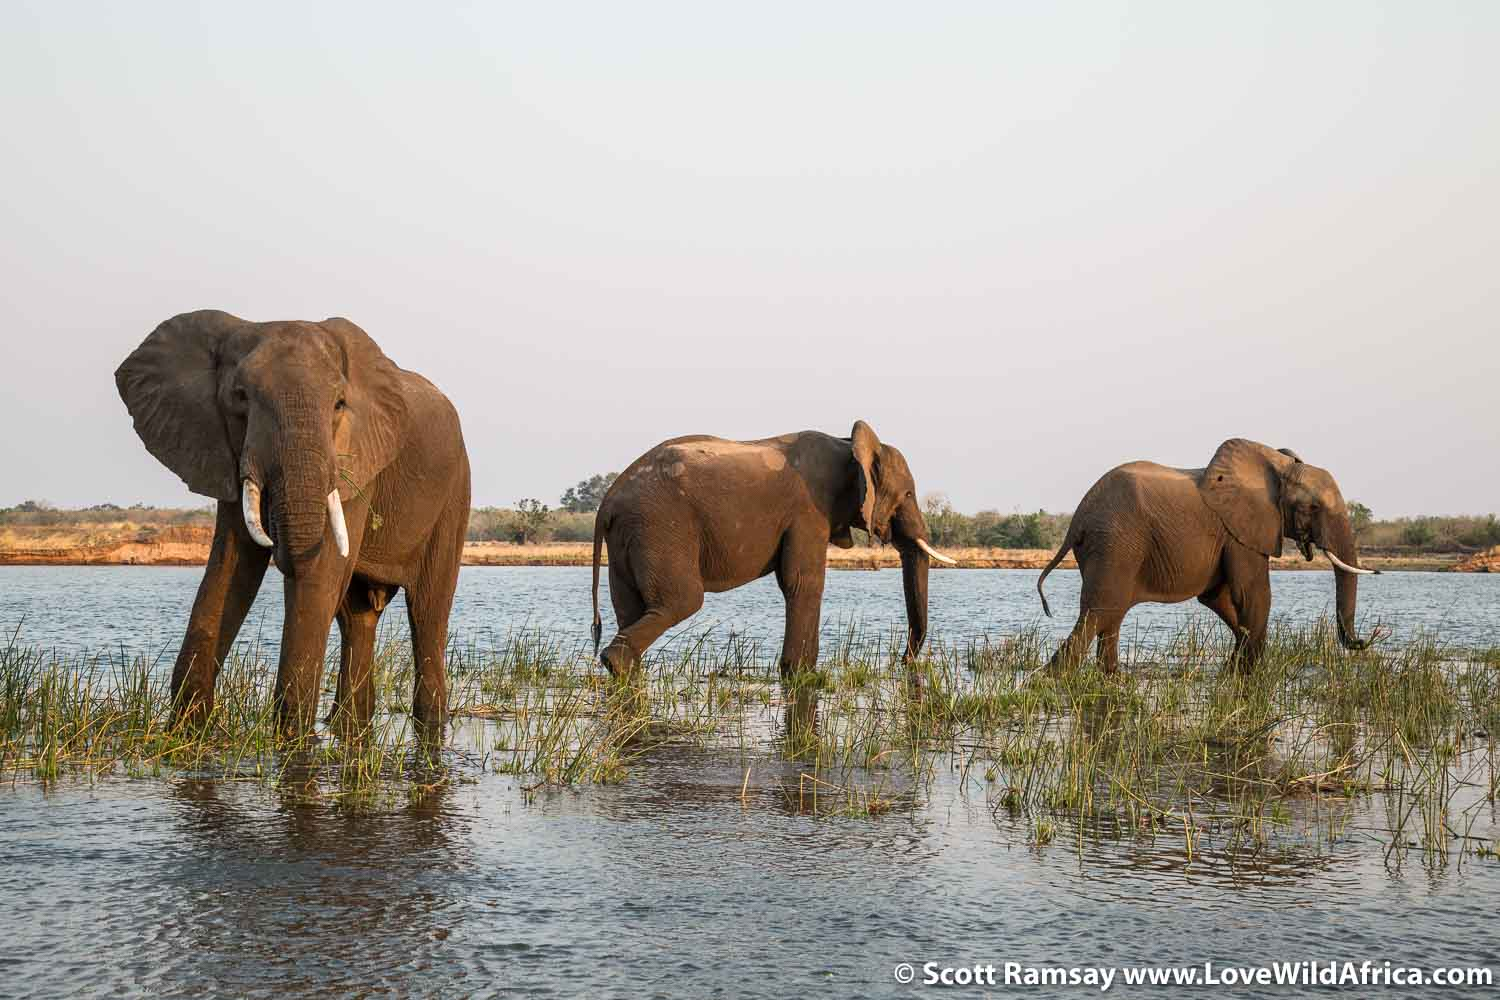 Three bull elephants feeding on succulent grass on an island in the Zambezi River in Mana Pools.